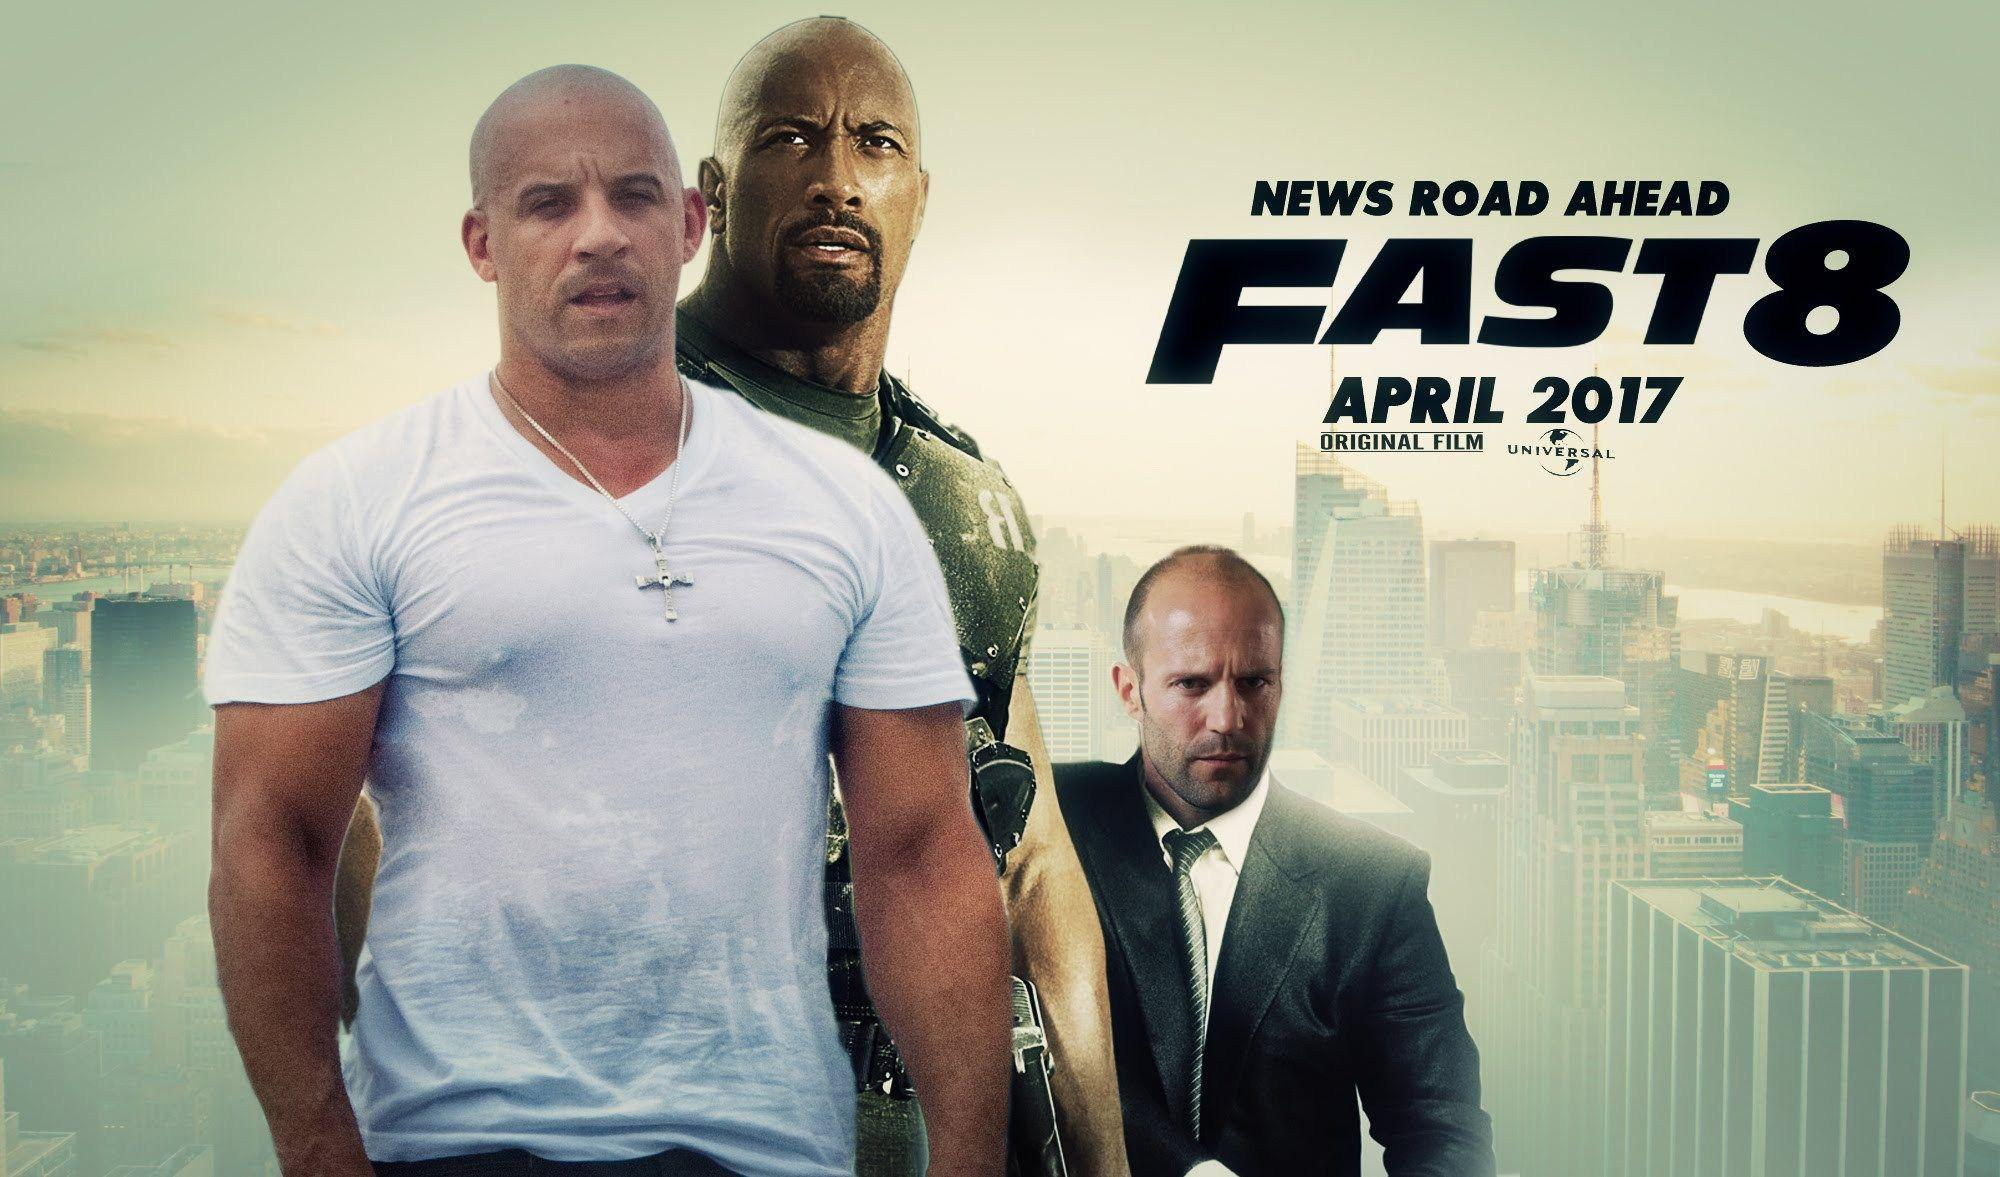 fast and furious 8 full movie Archives - HD Wallpapers